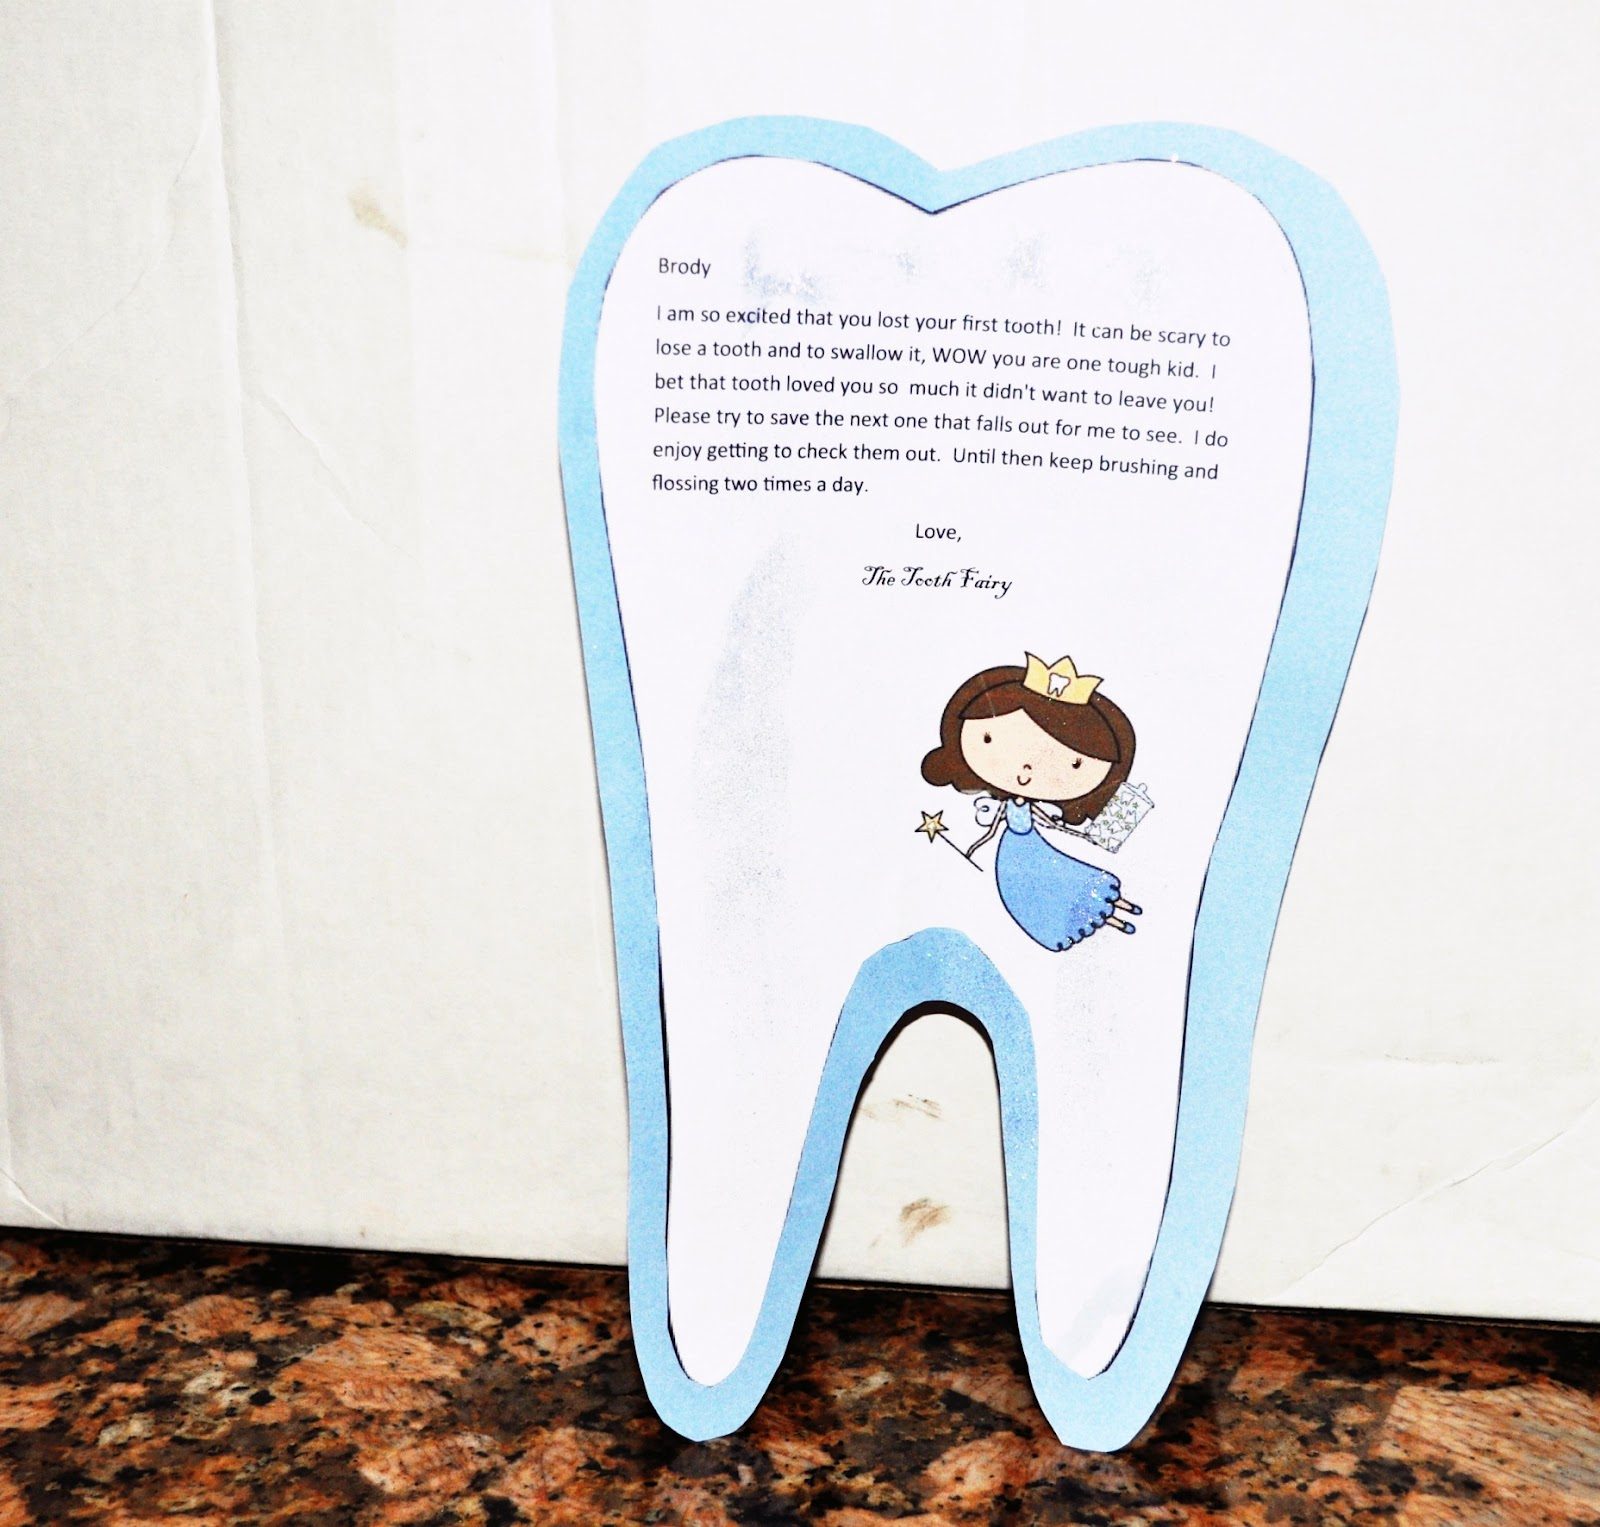 Swallowed Tooth Fairy Letter